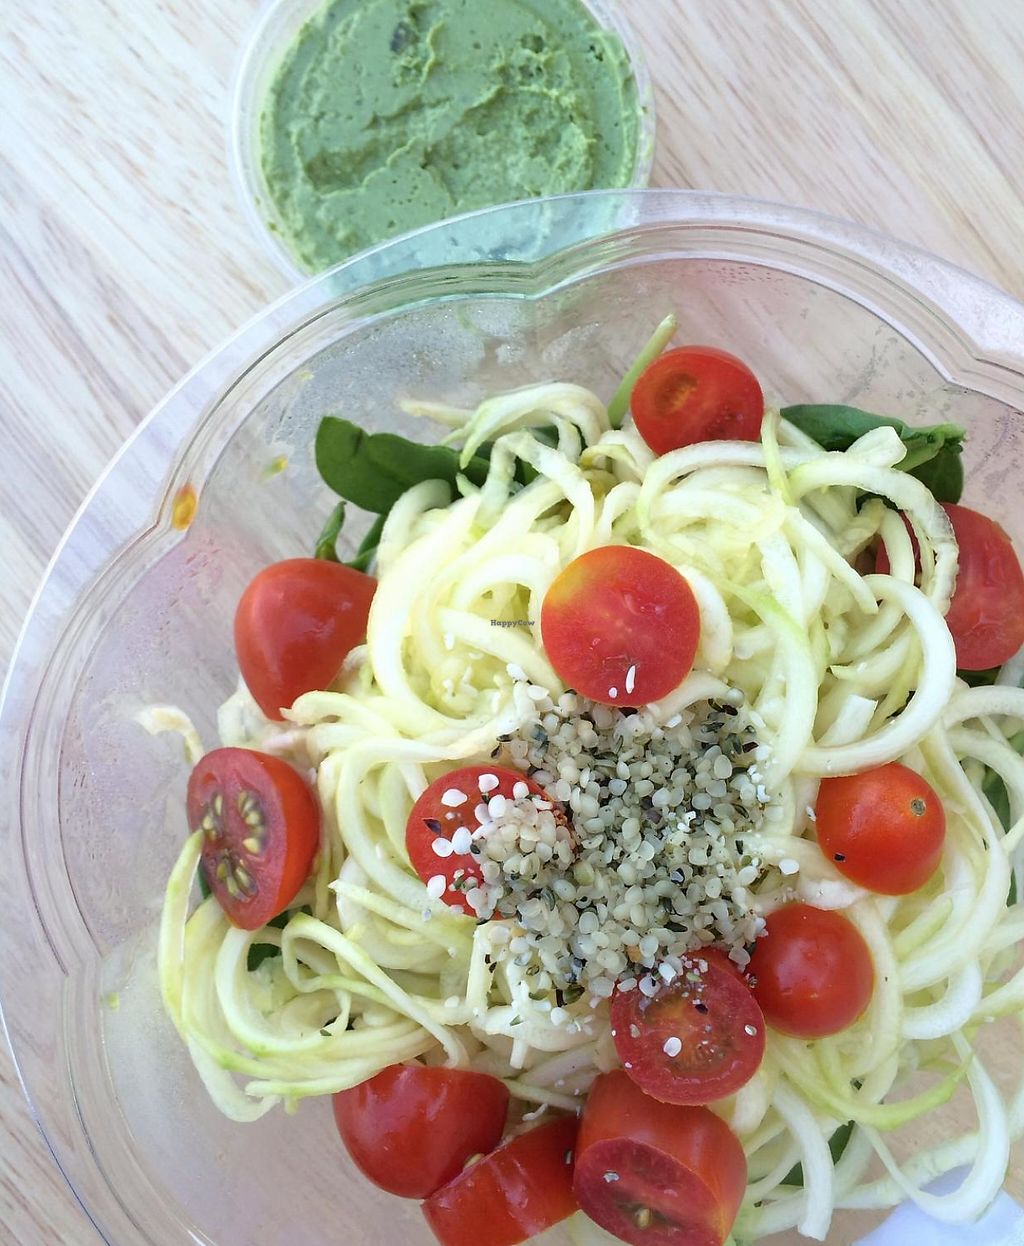 "Photo of Juice Core  by <a href=""/members/profile/Maluki"">Maluki</a> <br/>Rawsta salad with pesto <br/> May 6, 2015  - <a href='/contact/abuse/image/50040/189645'>Report</a>"